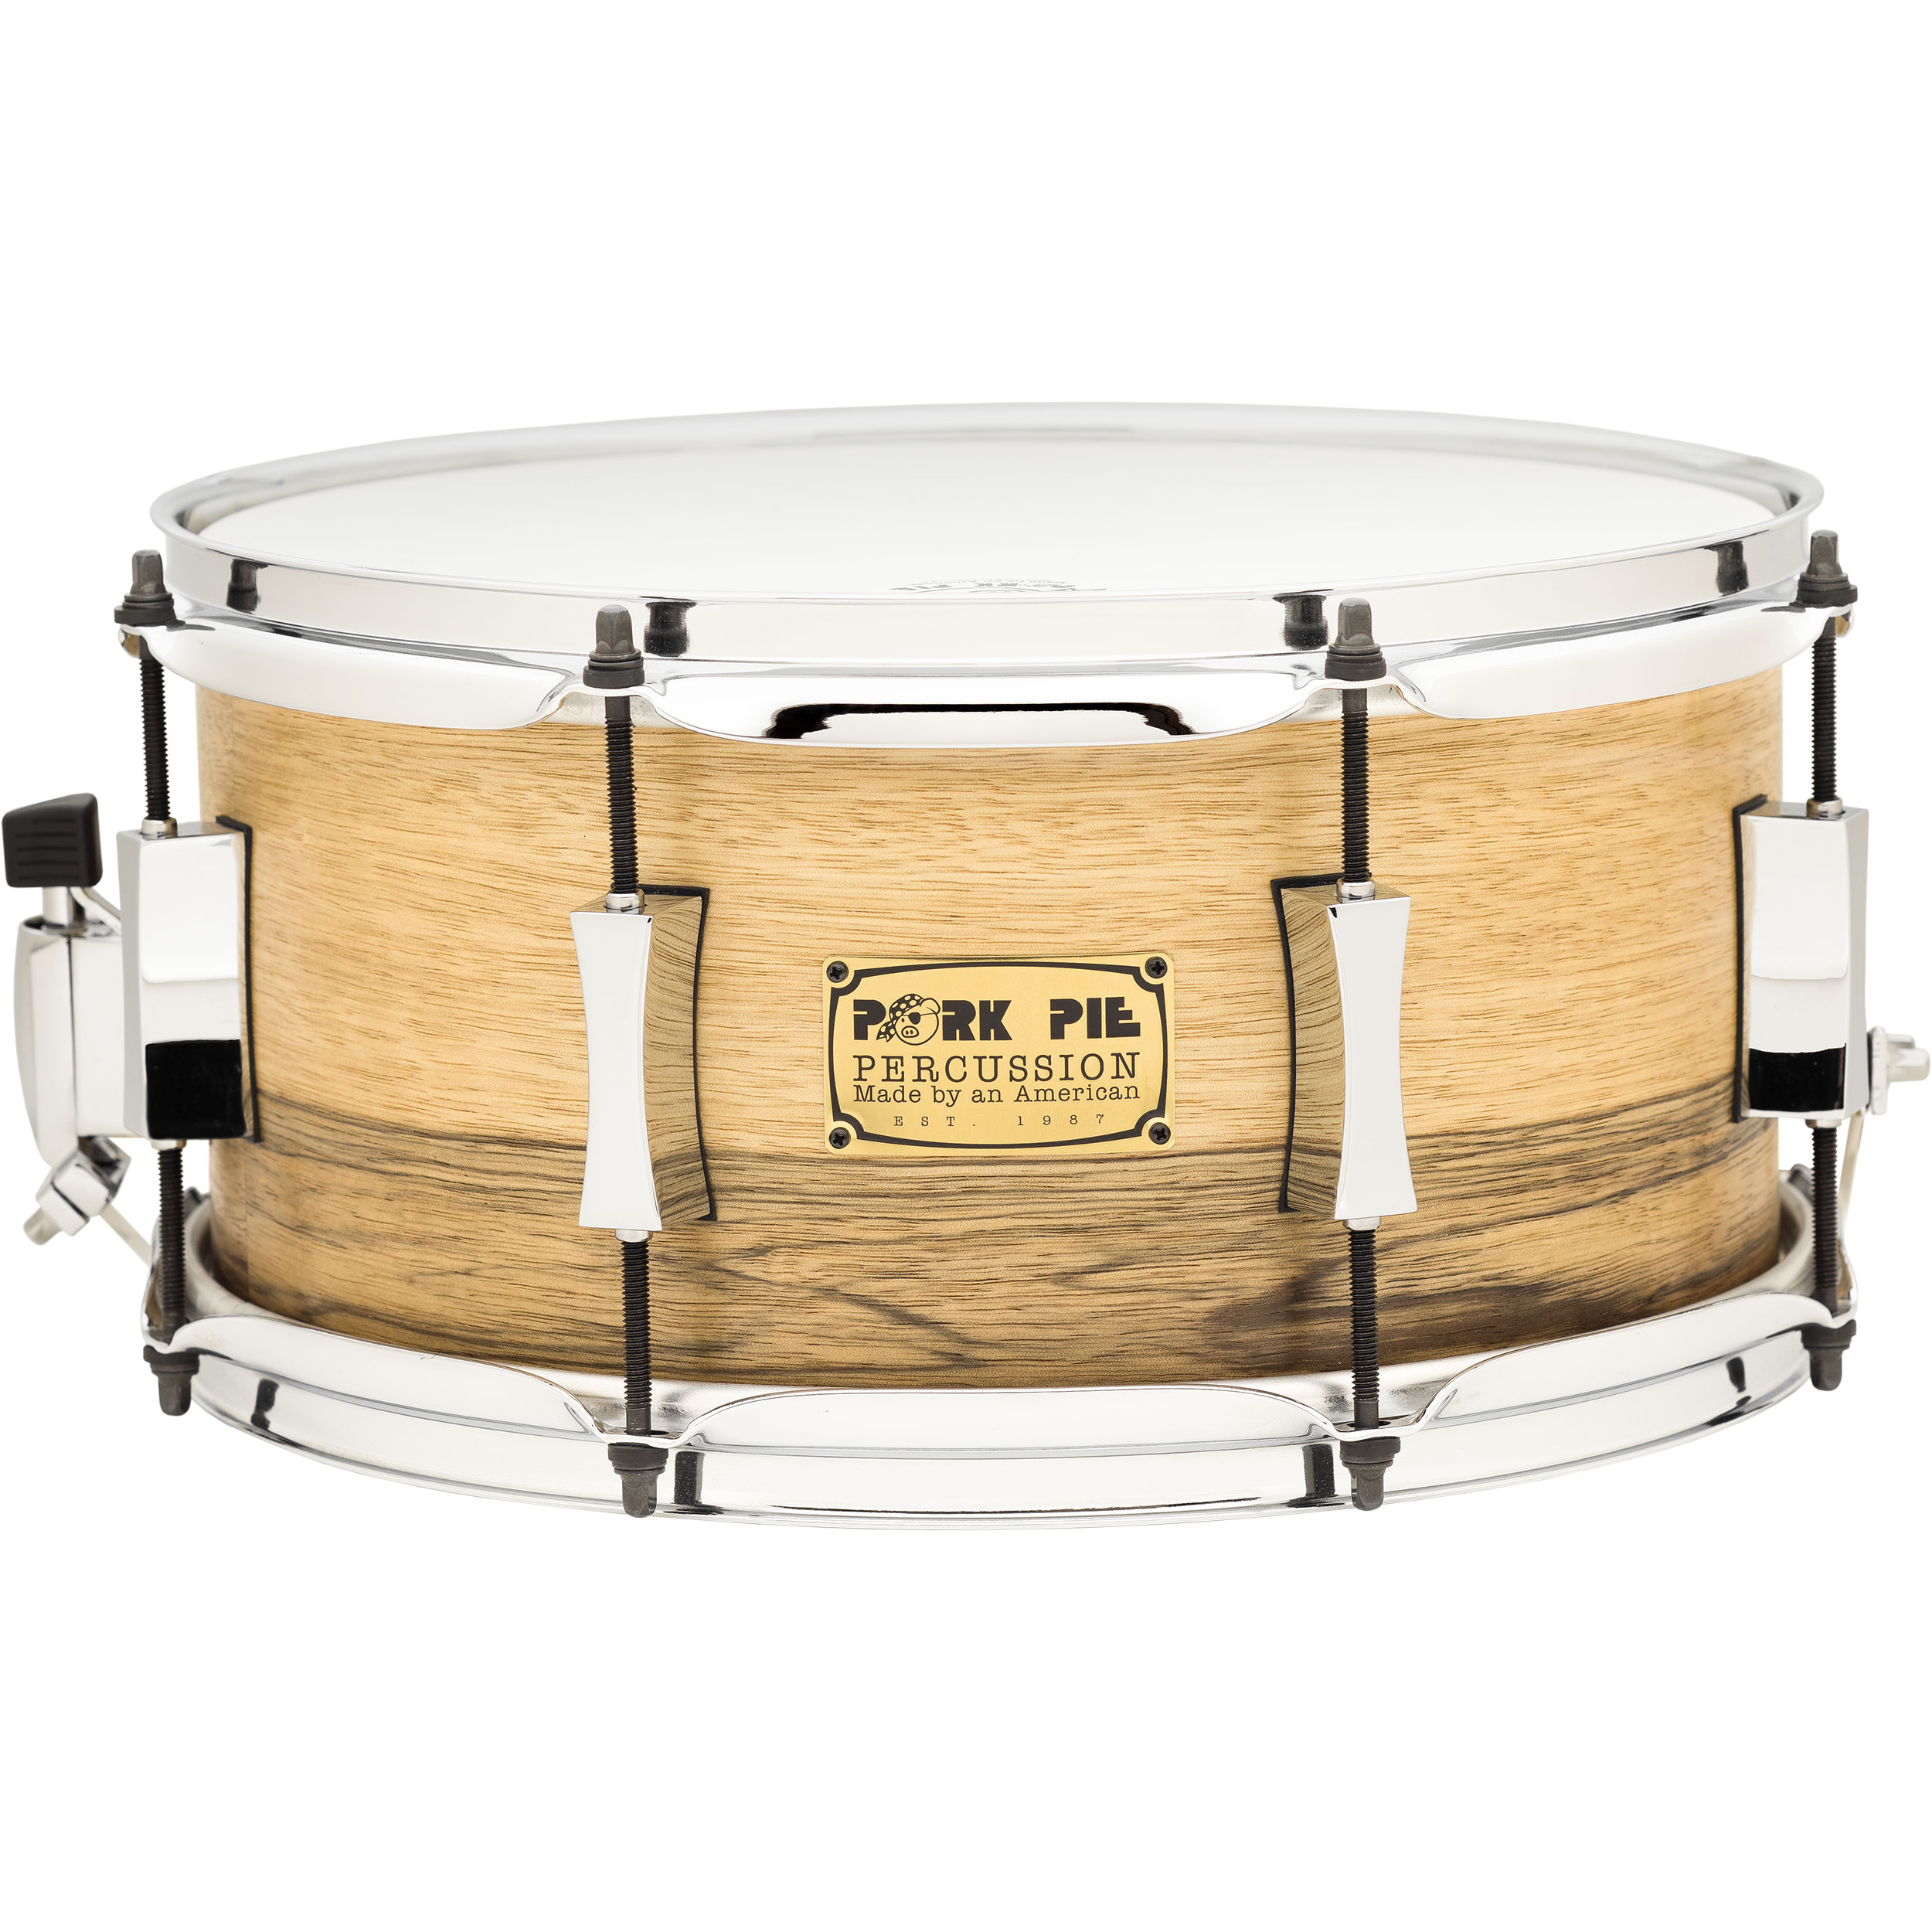 "Pork Pie Percussion 7"" x 13"" Oak Snare Drum with African Marble Veneer"